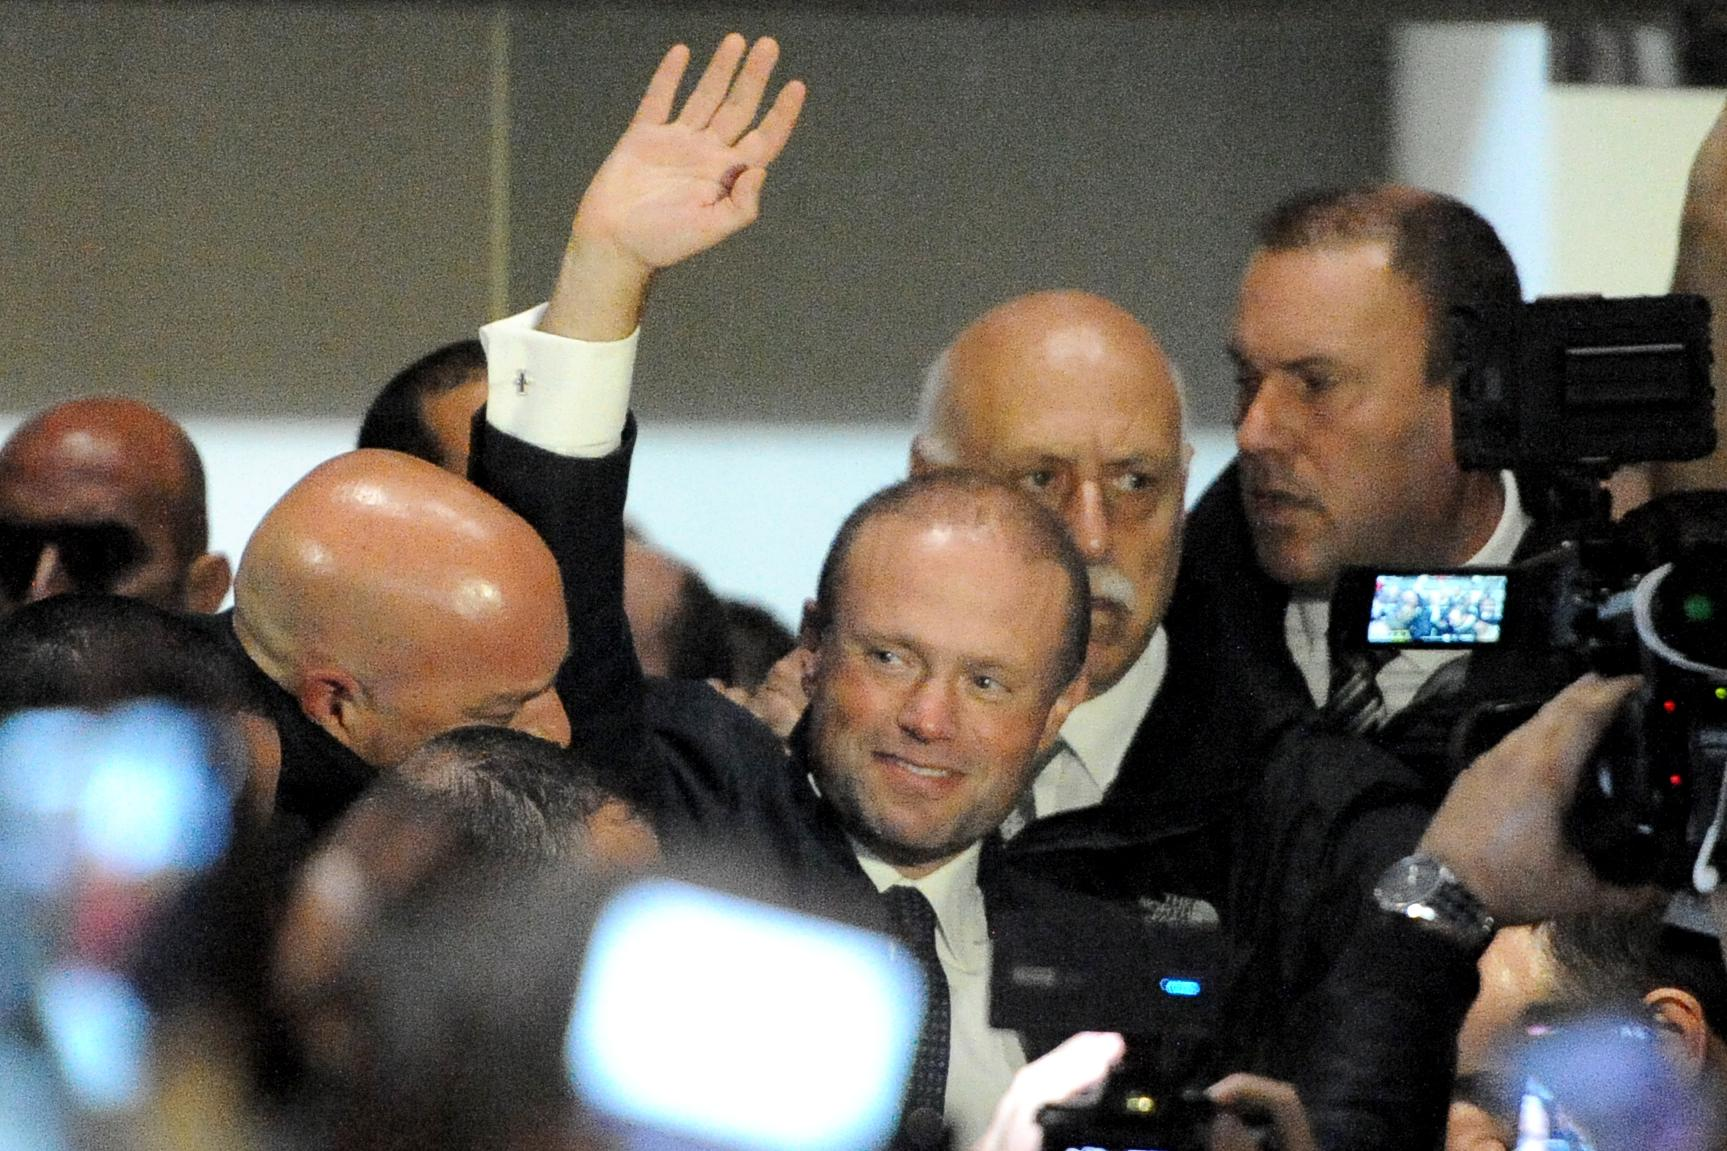 Joseph Muscat outside party headquarters on Monday night. Photo: Chris Sant Fournier